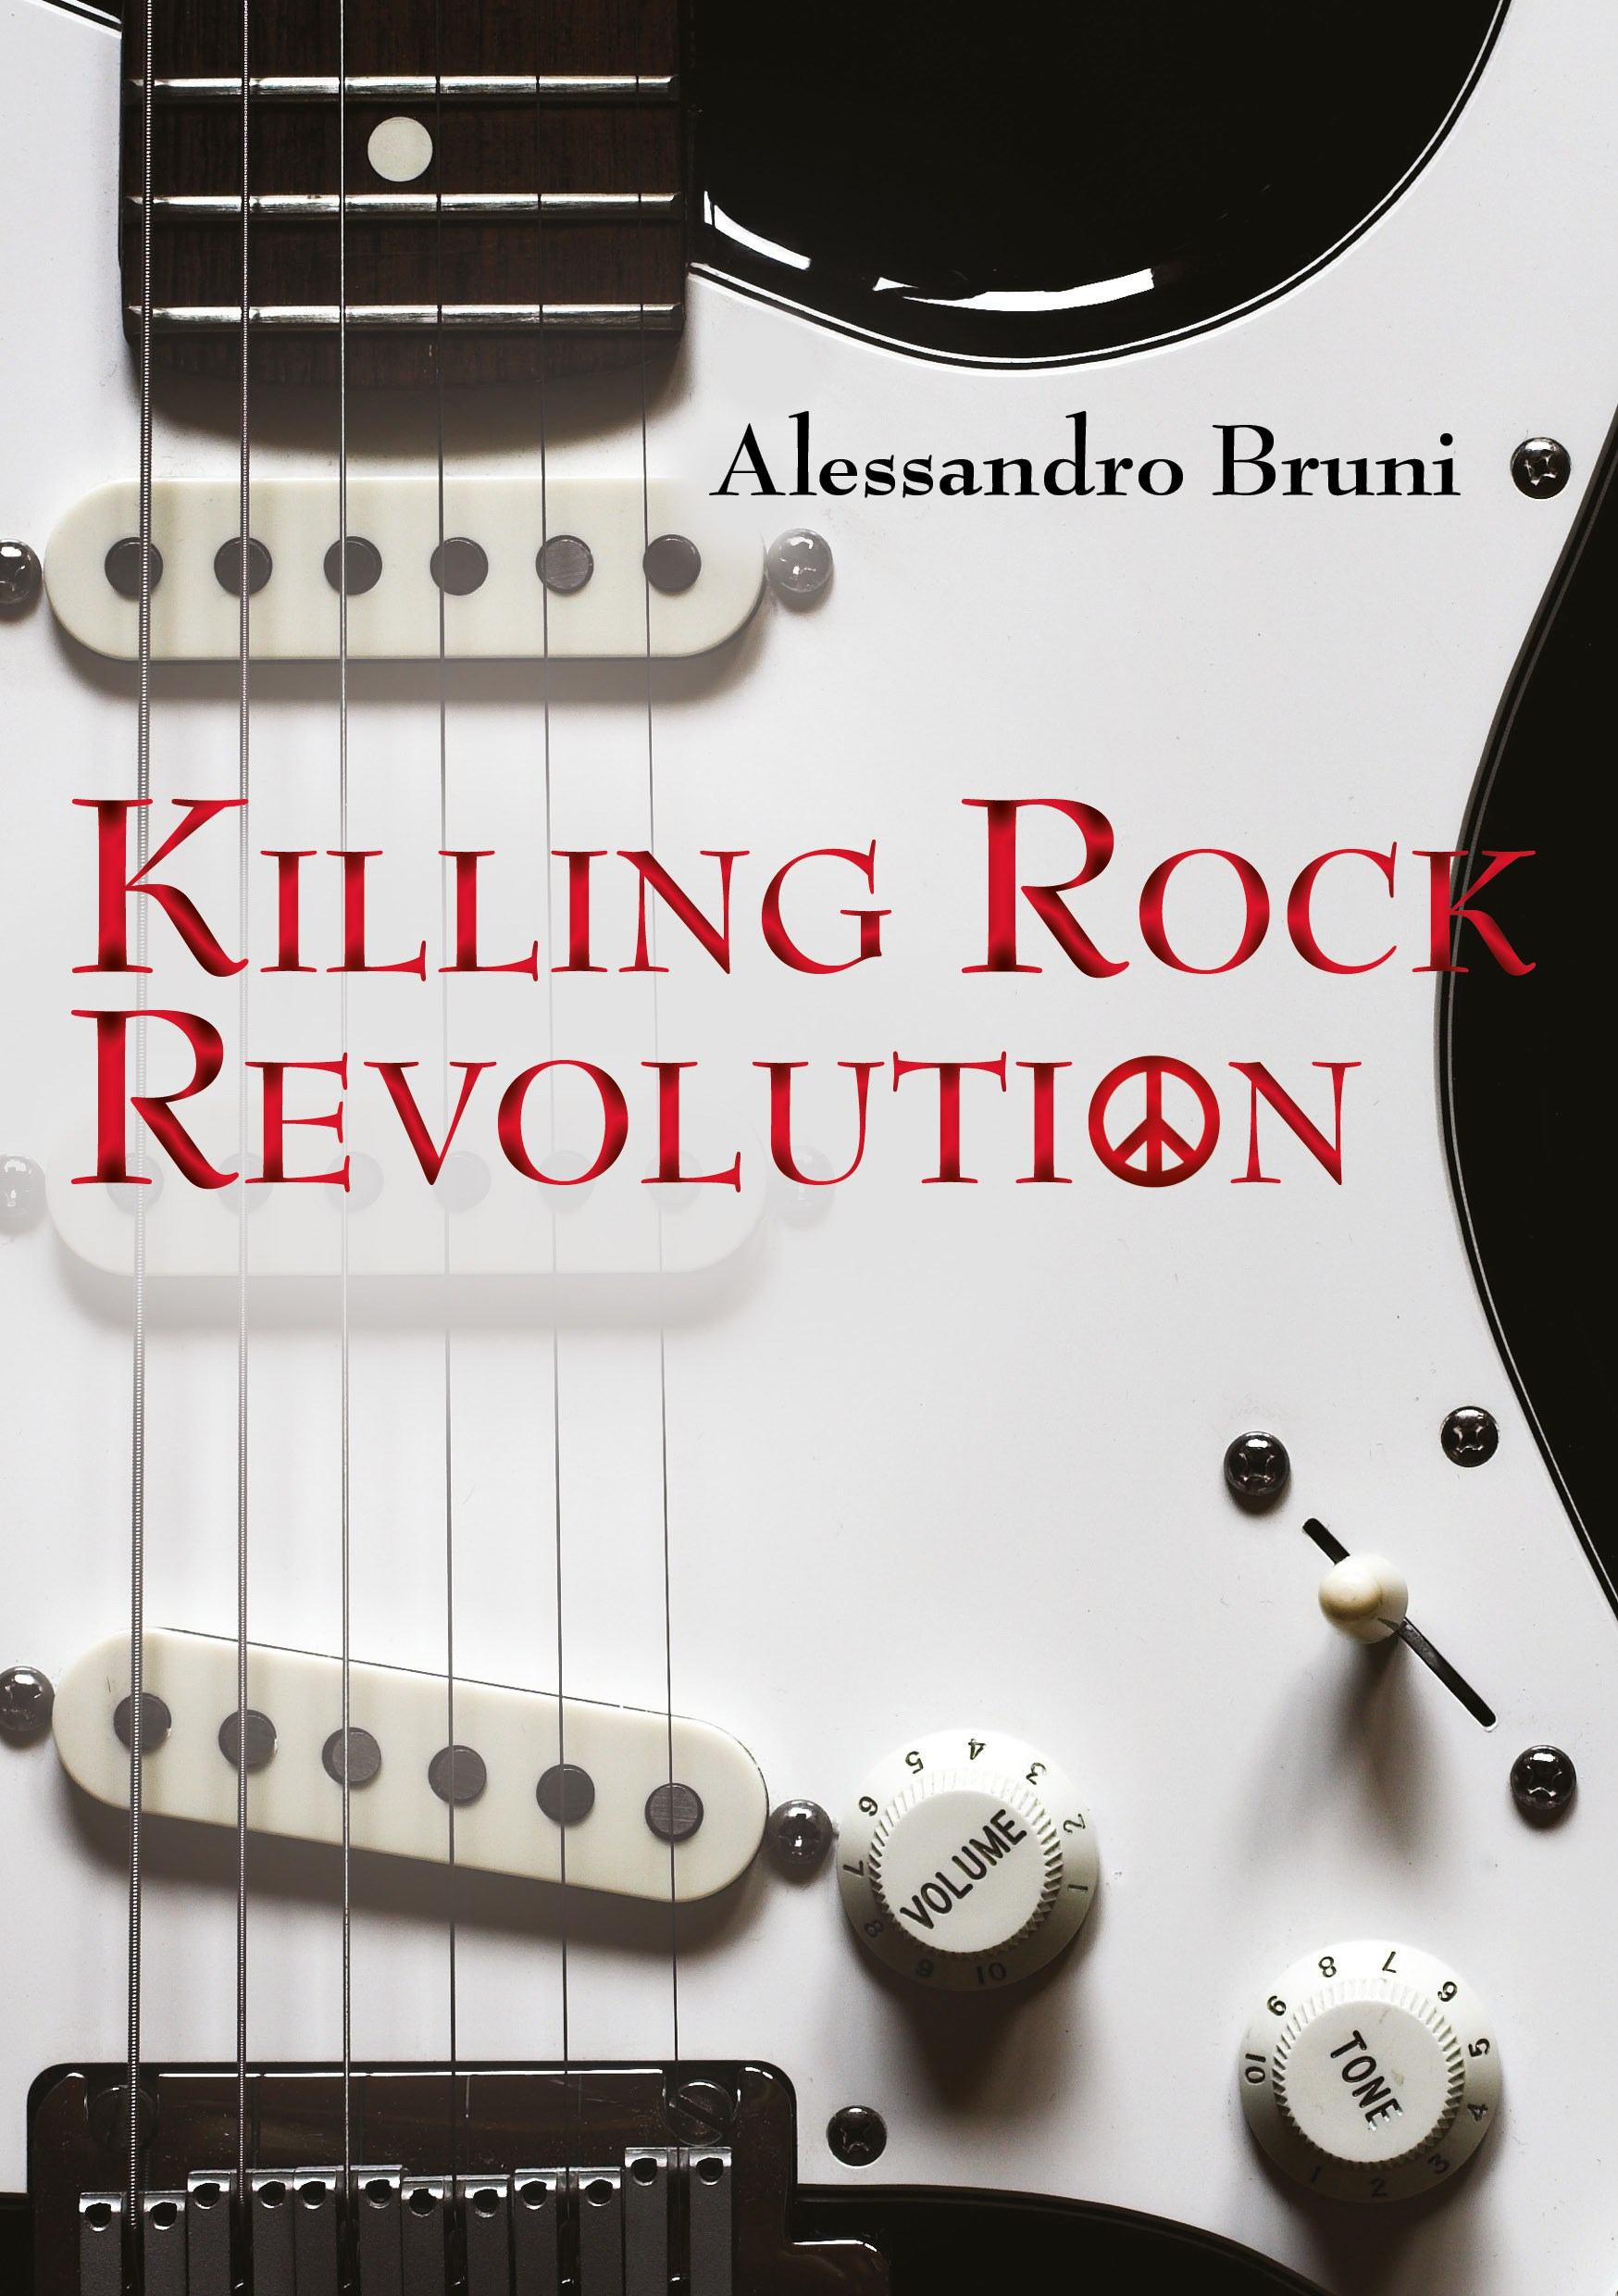 Killing rock revolution, di Alessandro Bruni